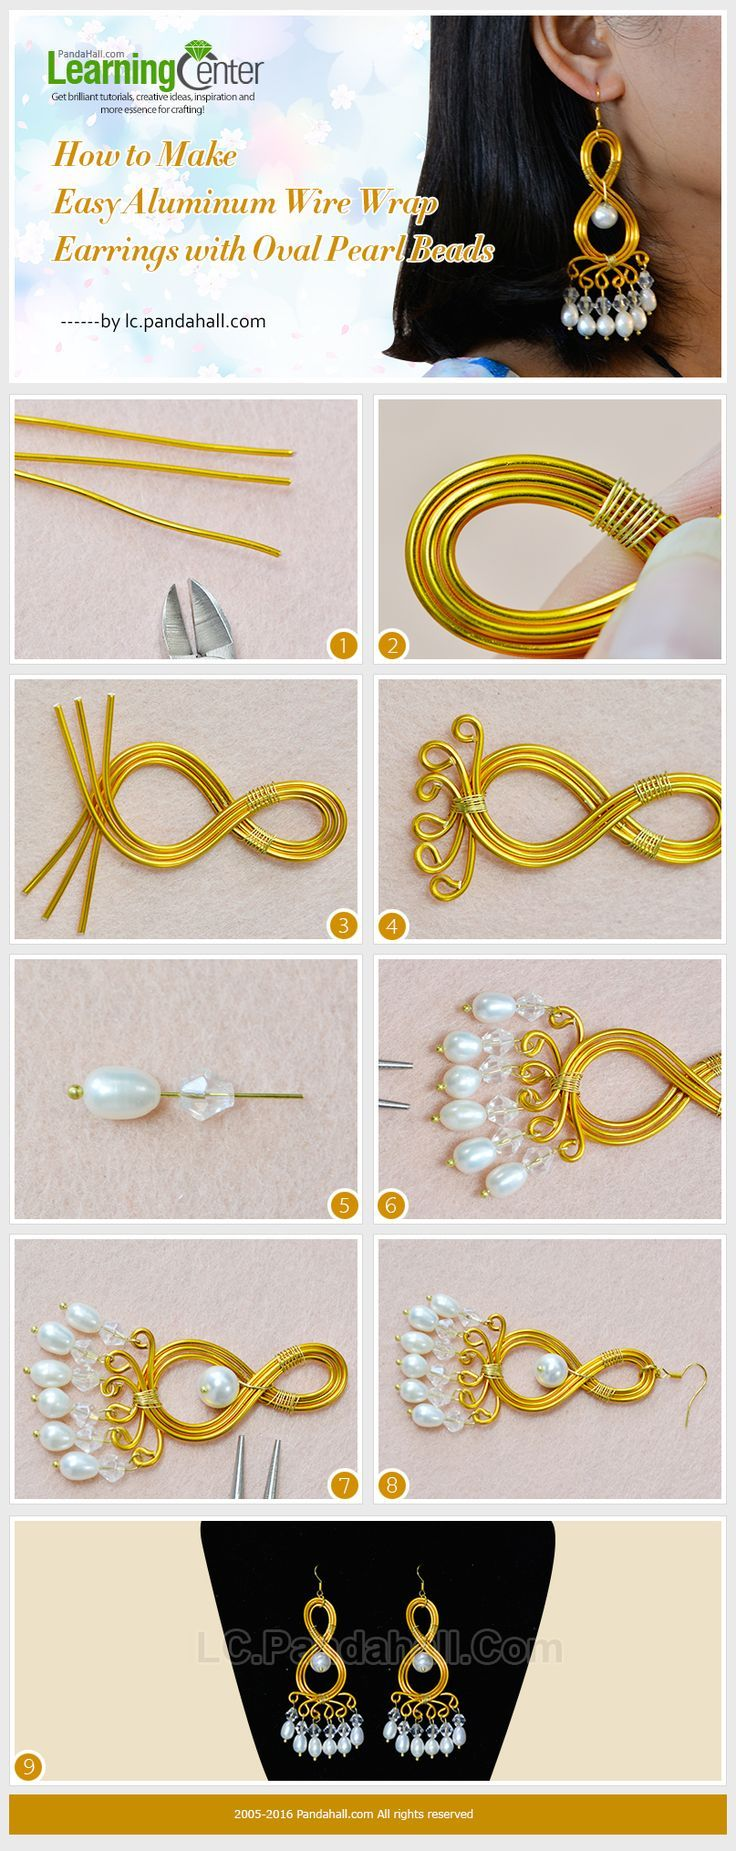 cool DIY Bijoux - How to Make Easy Aluminum Wire Wrap Earrings with Oval Pearl Beads...